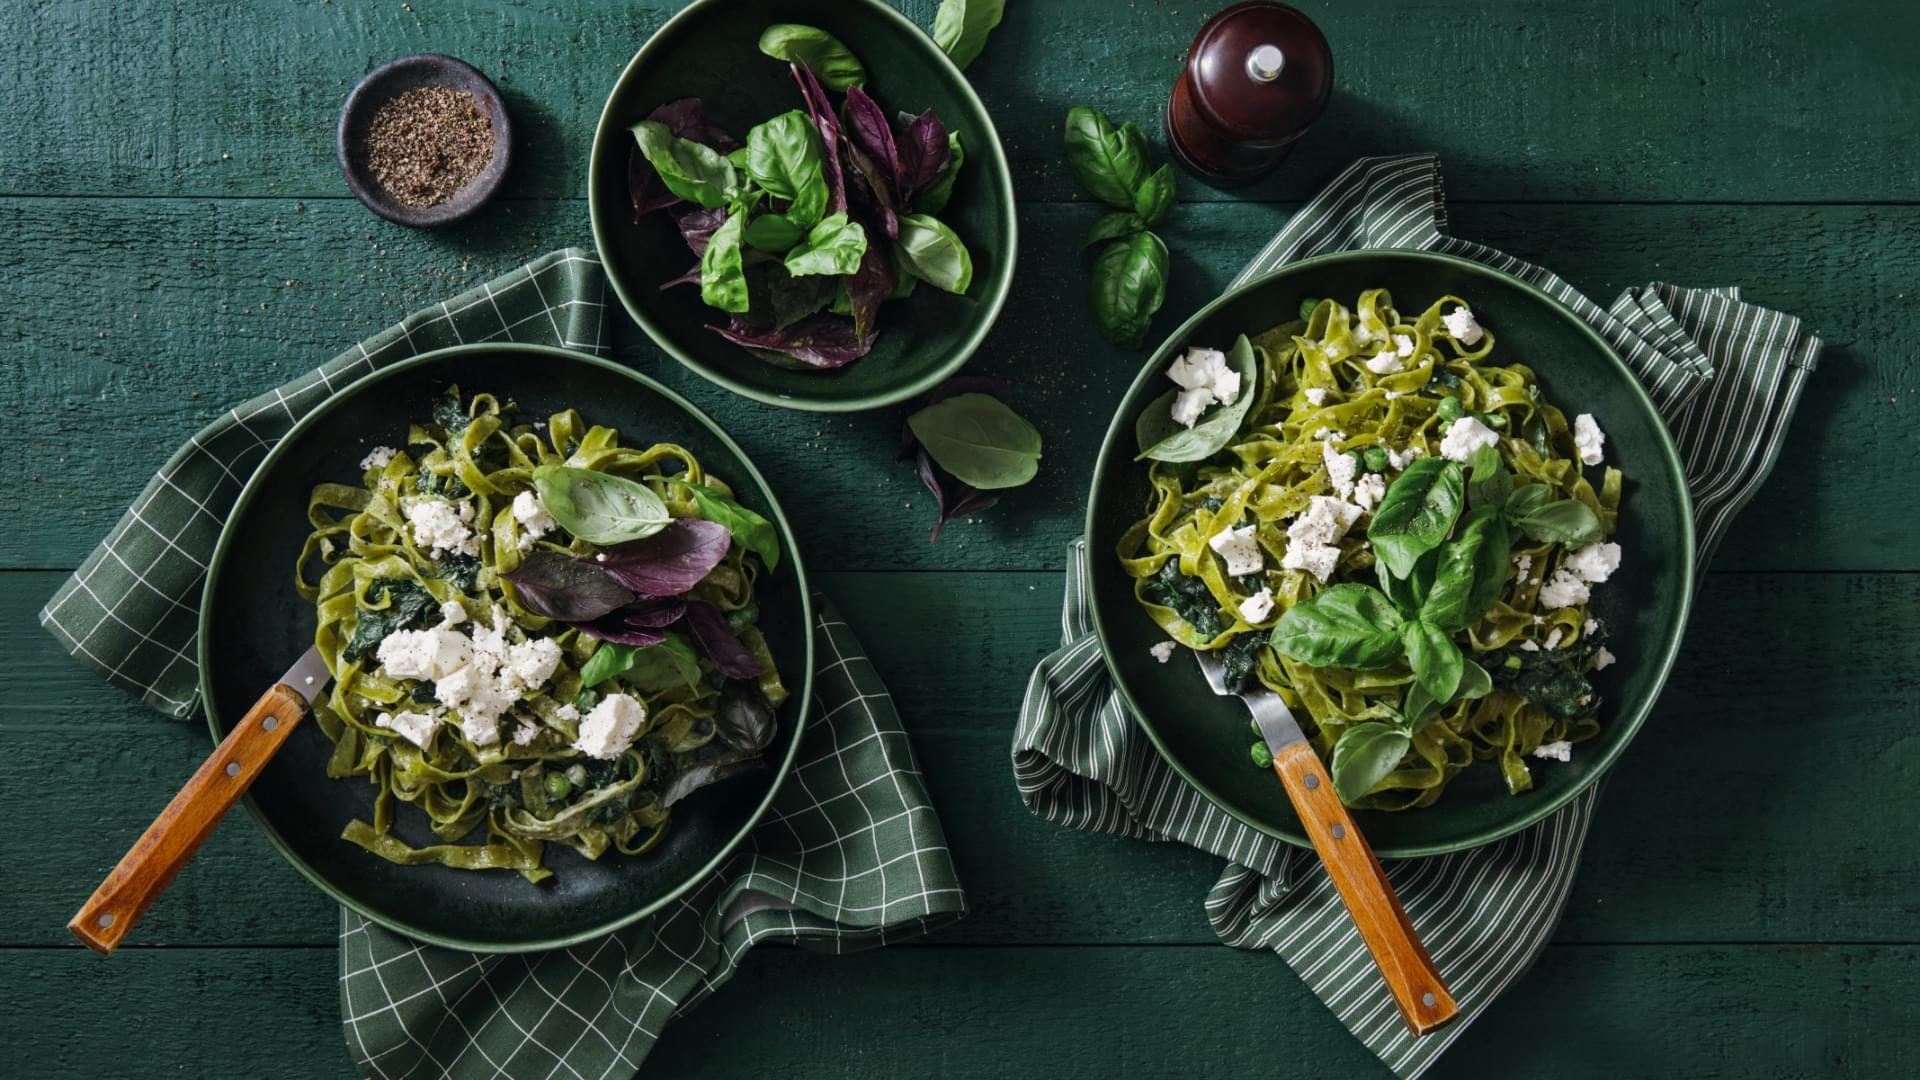 Spinach pasta with basil and feta.